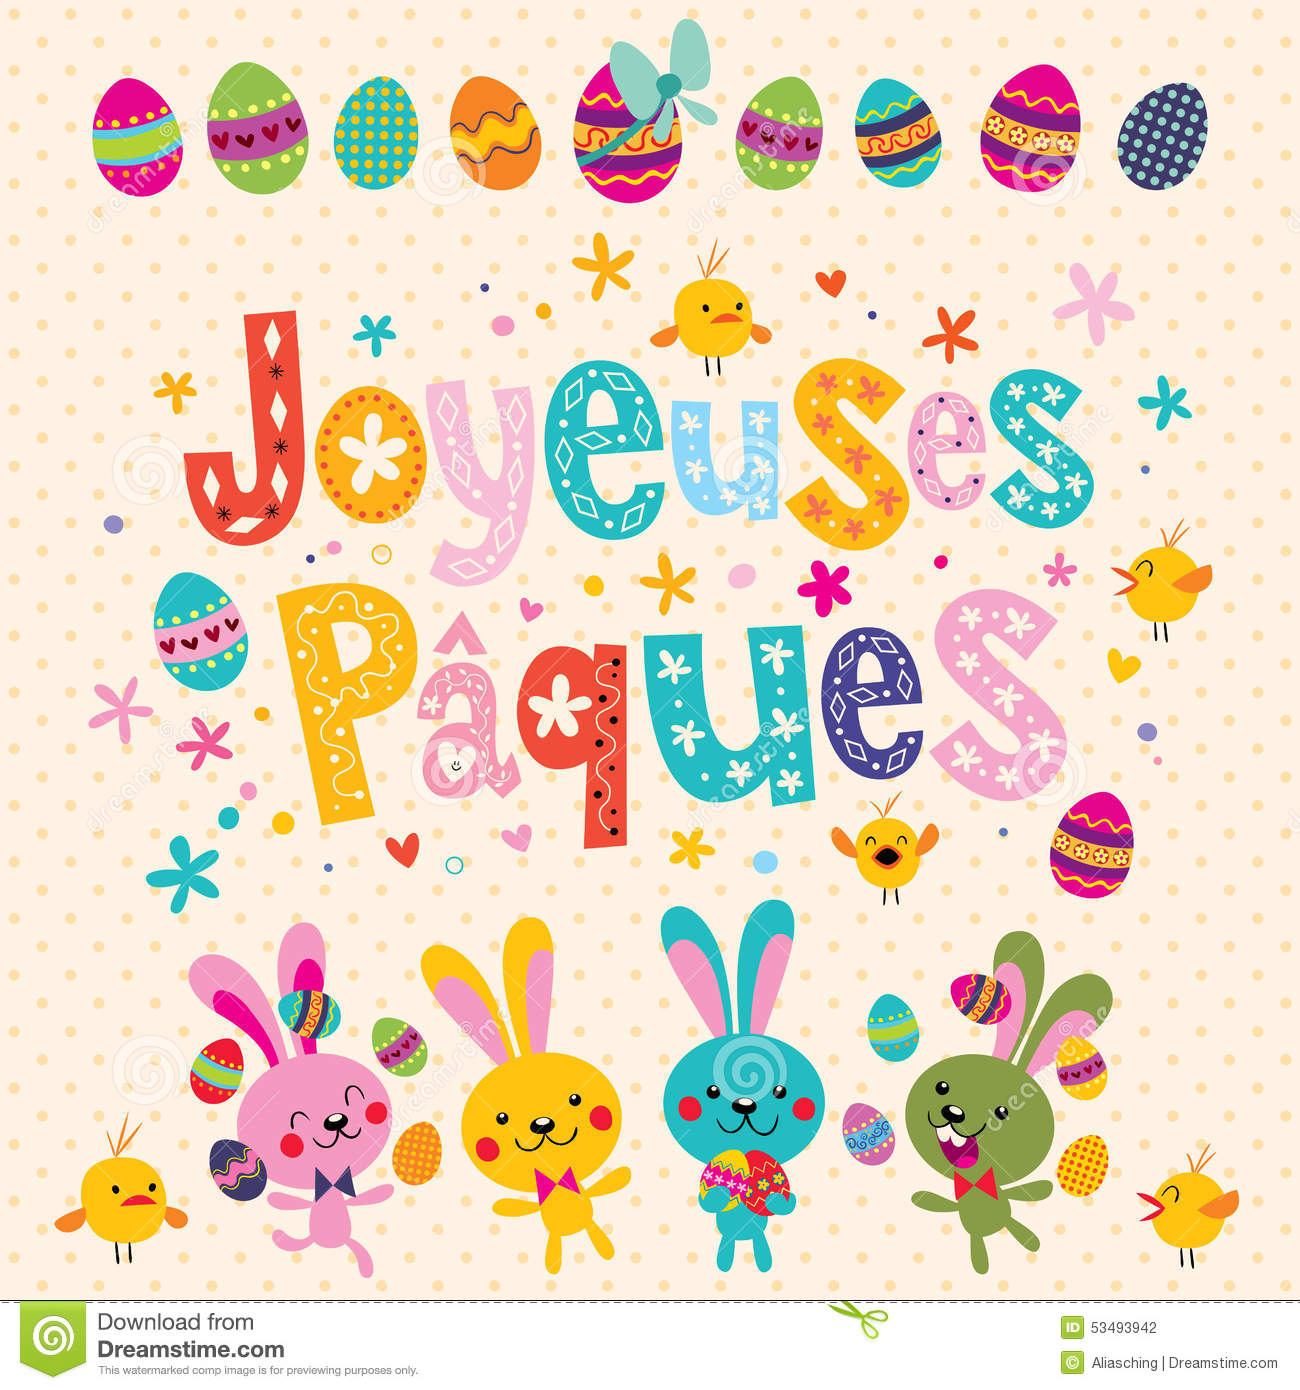 Joyeuses Paques Happy Easter In French Greeting Card With